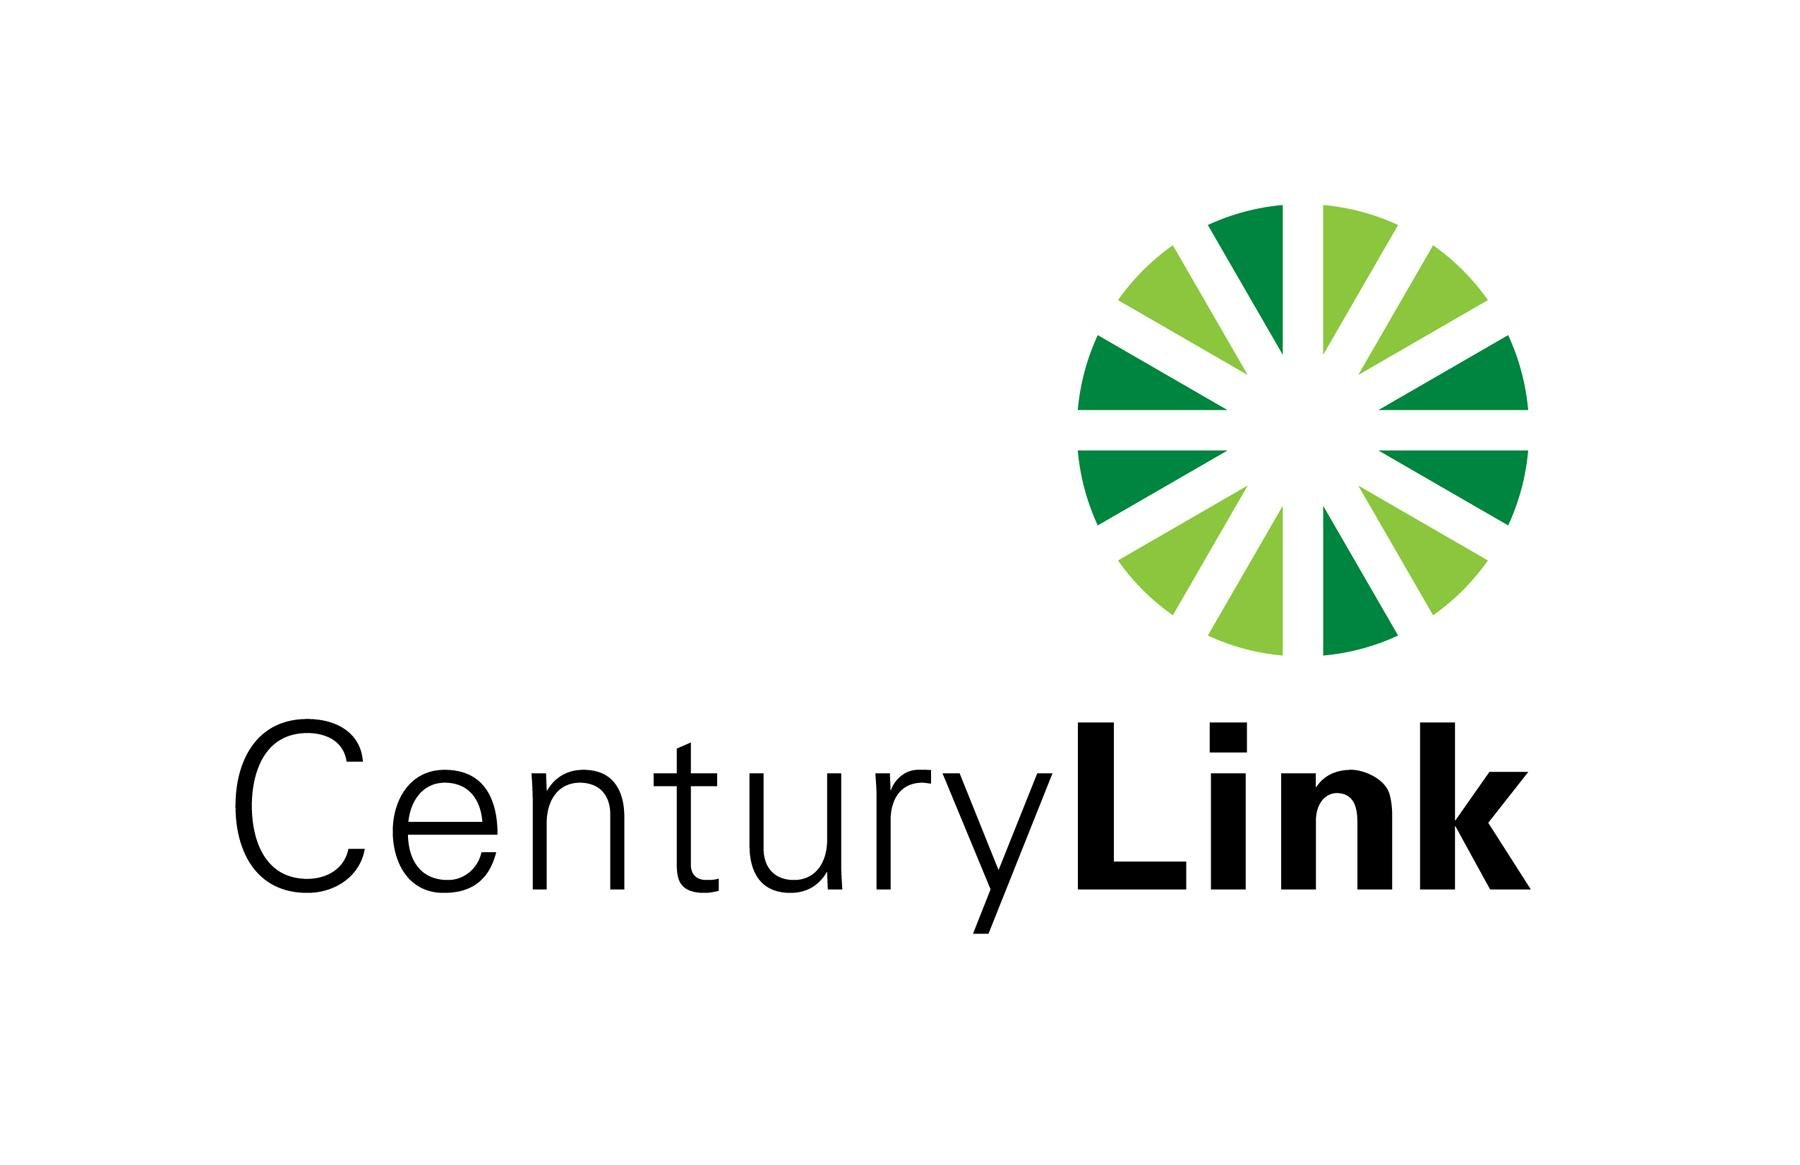 CenturyLink says 911 services were restored around 1:30 p.m. on Wednesday.